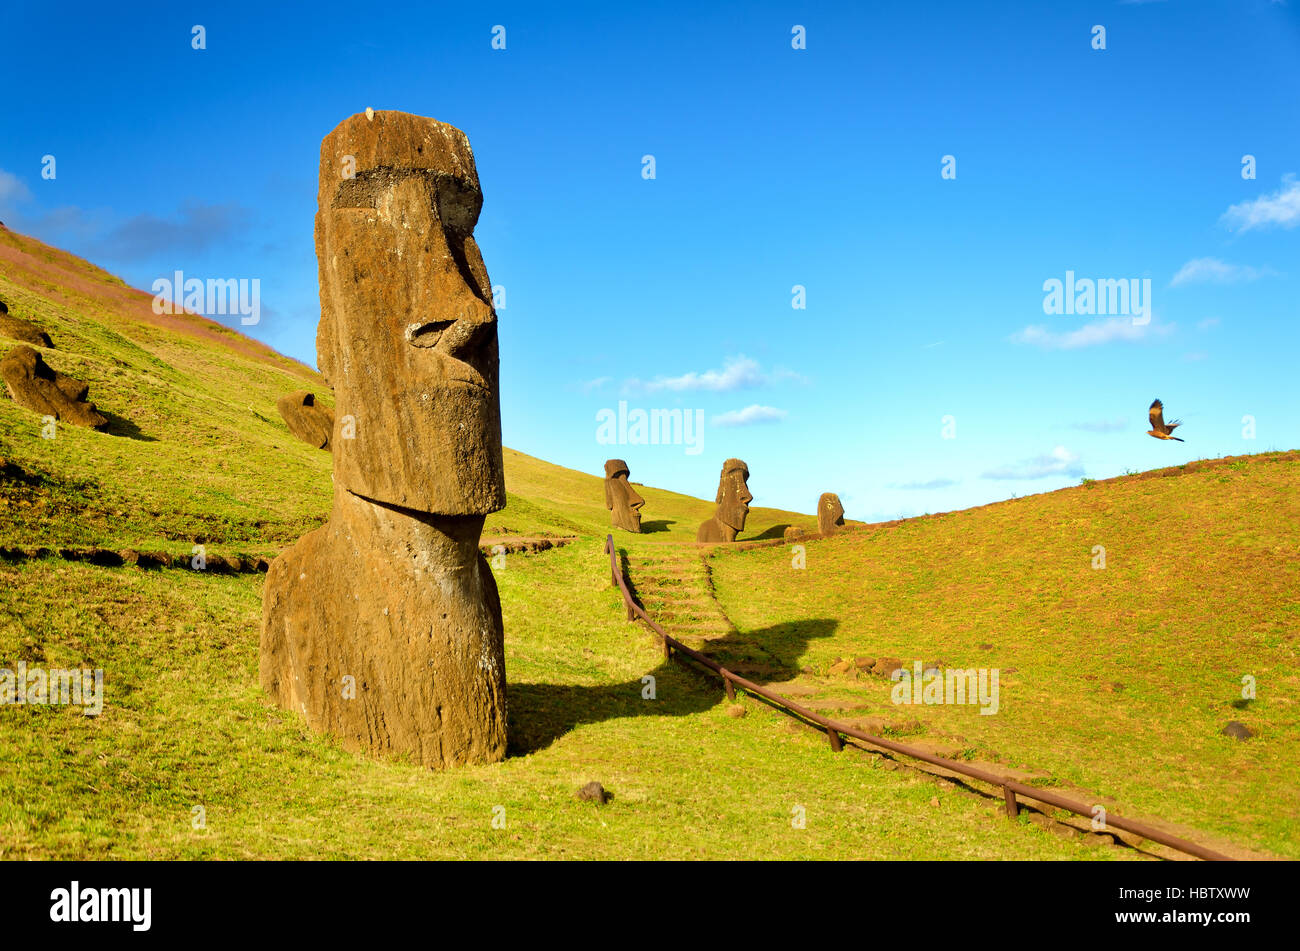 The Moai of the hills of Easter Island, Chile are joined in their solitude by a flying hawk - Stock Image